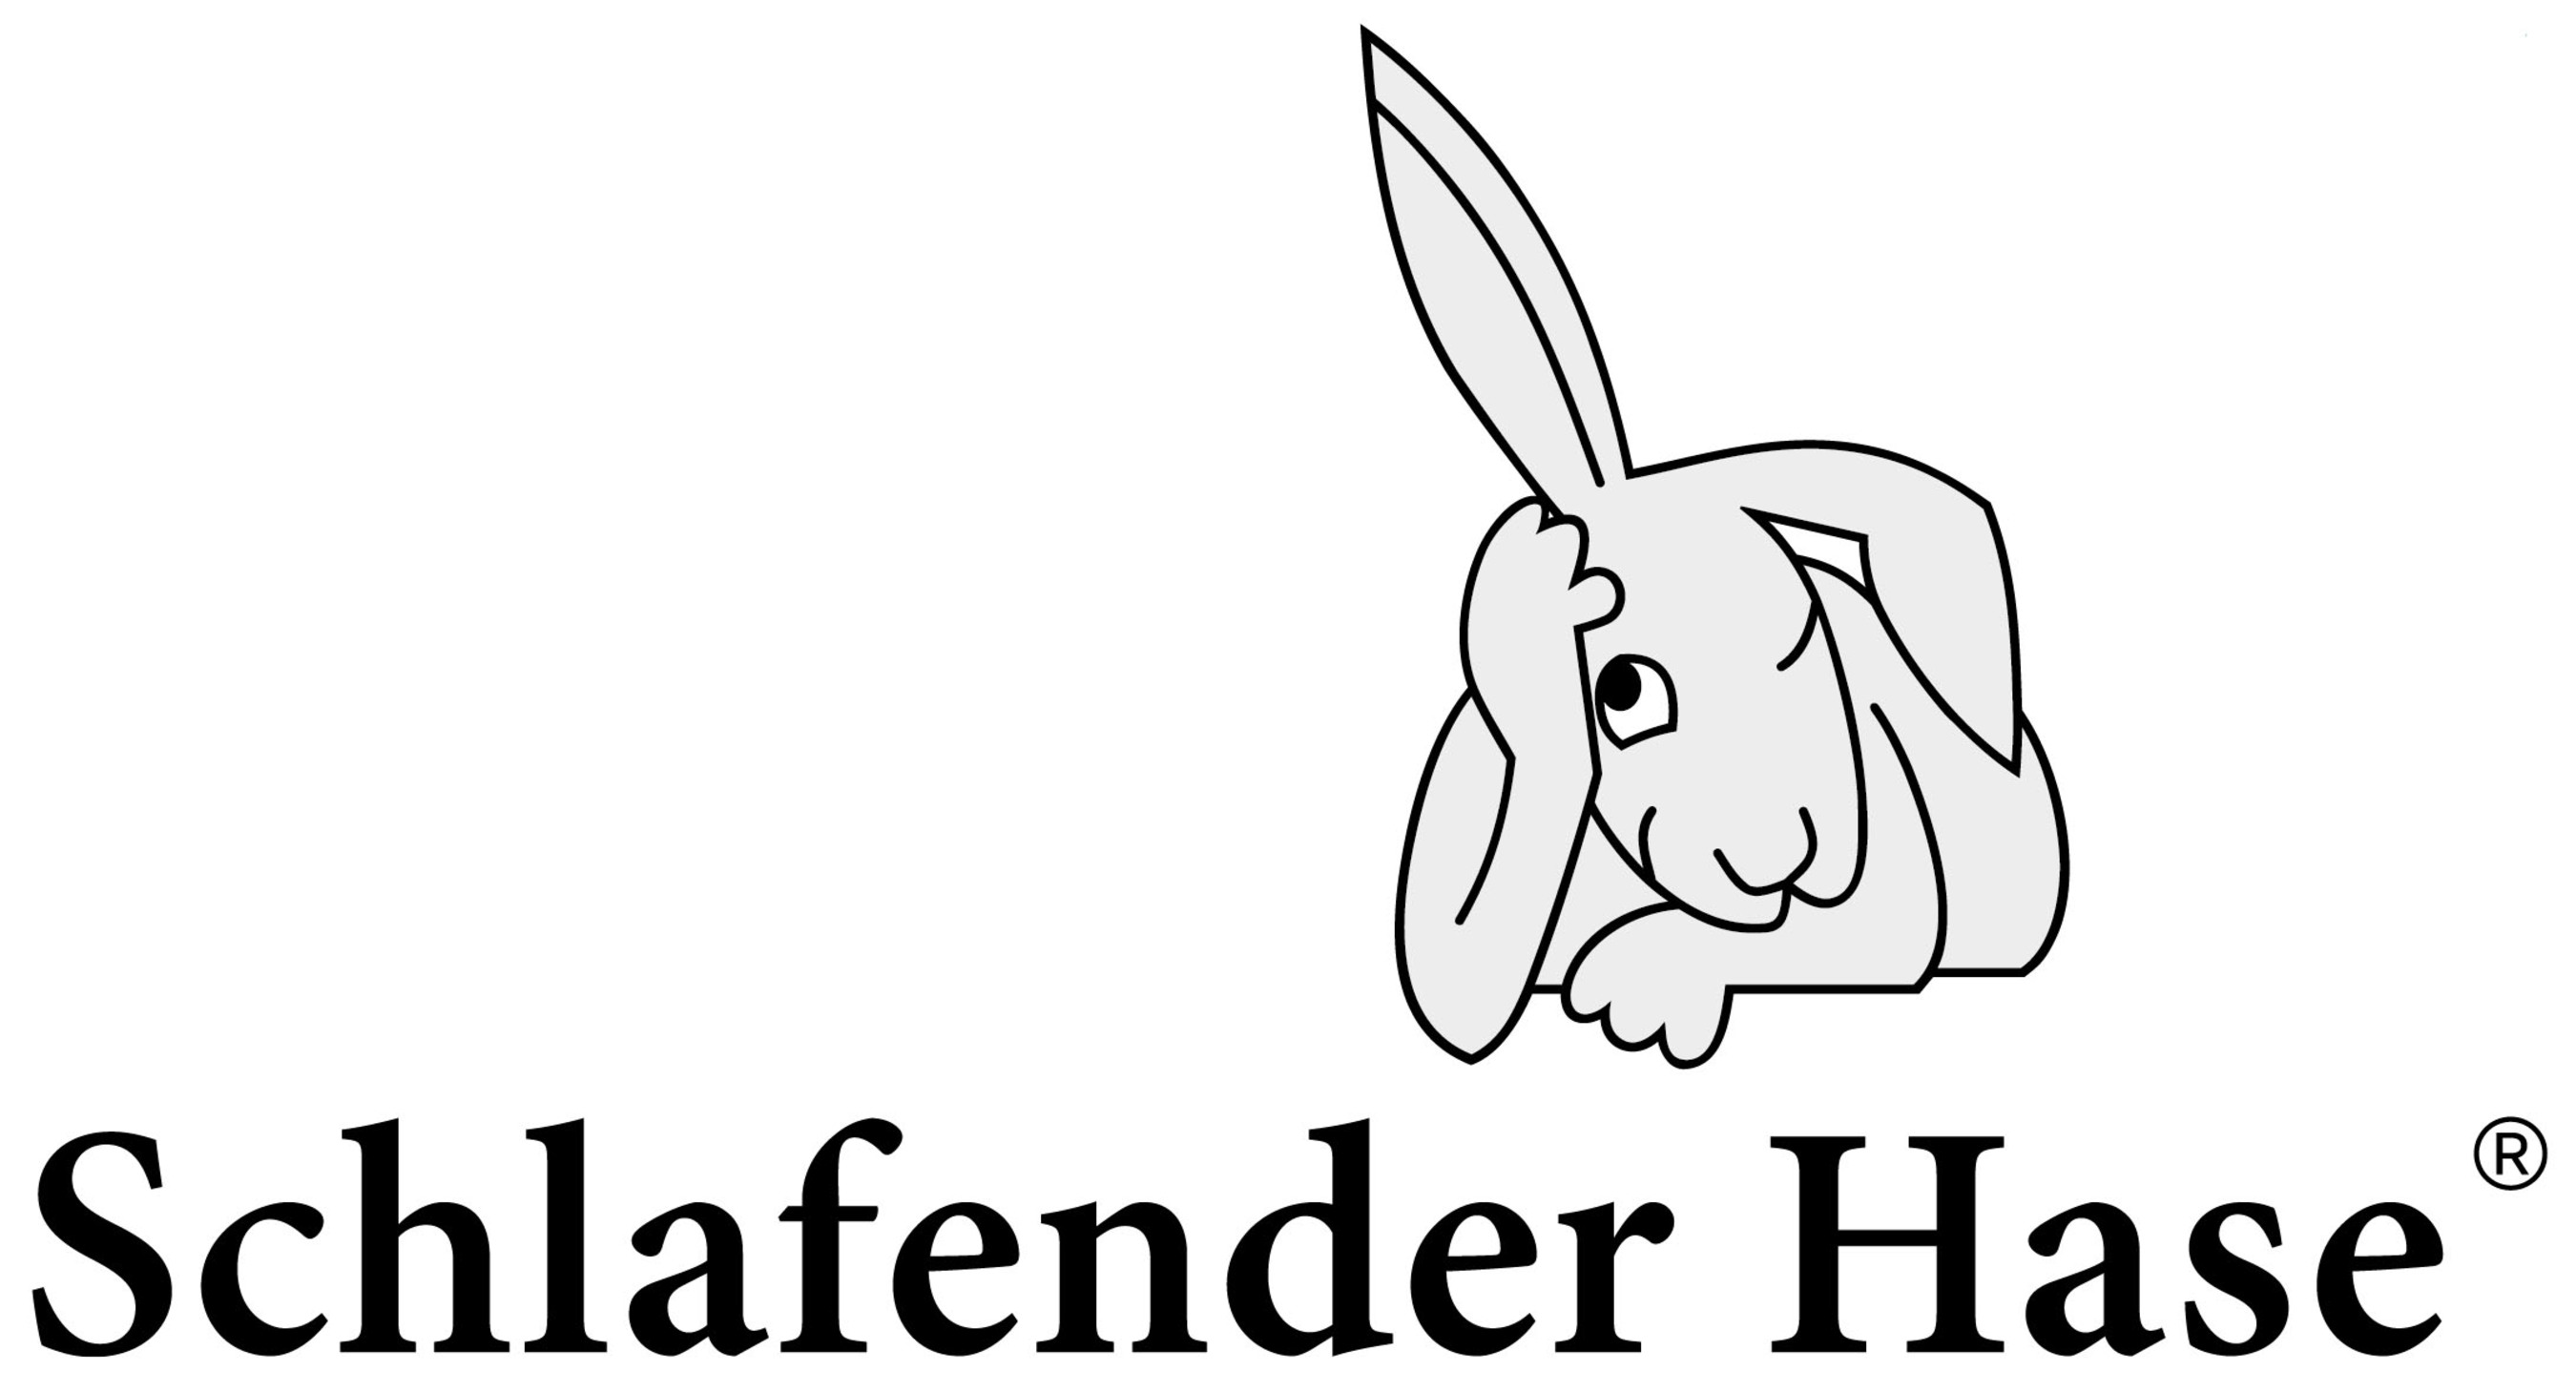 Schlafender Hase Releases TVT version 8.0 with enhanced graphic verification abilities